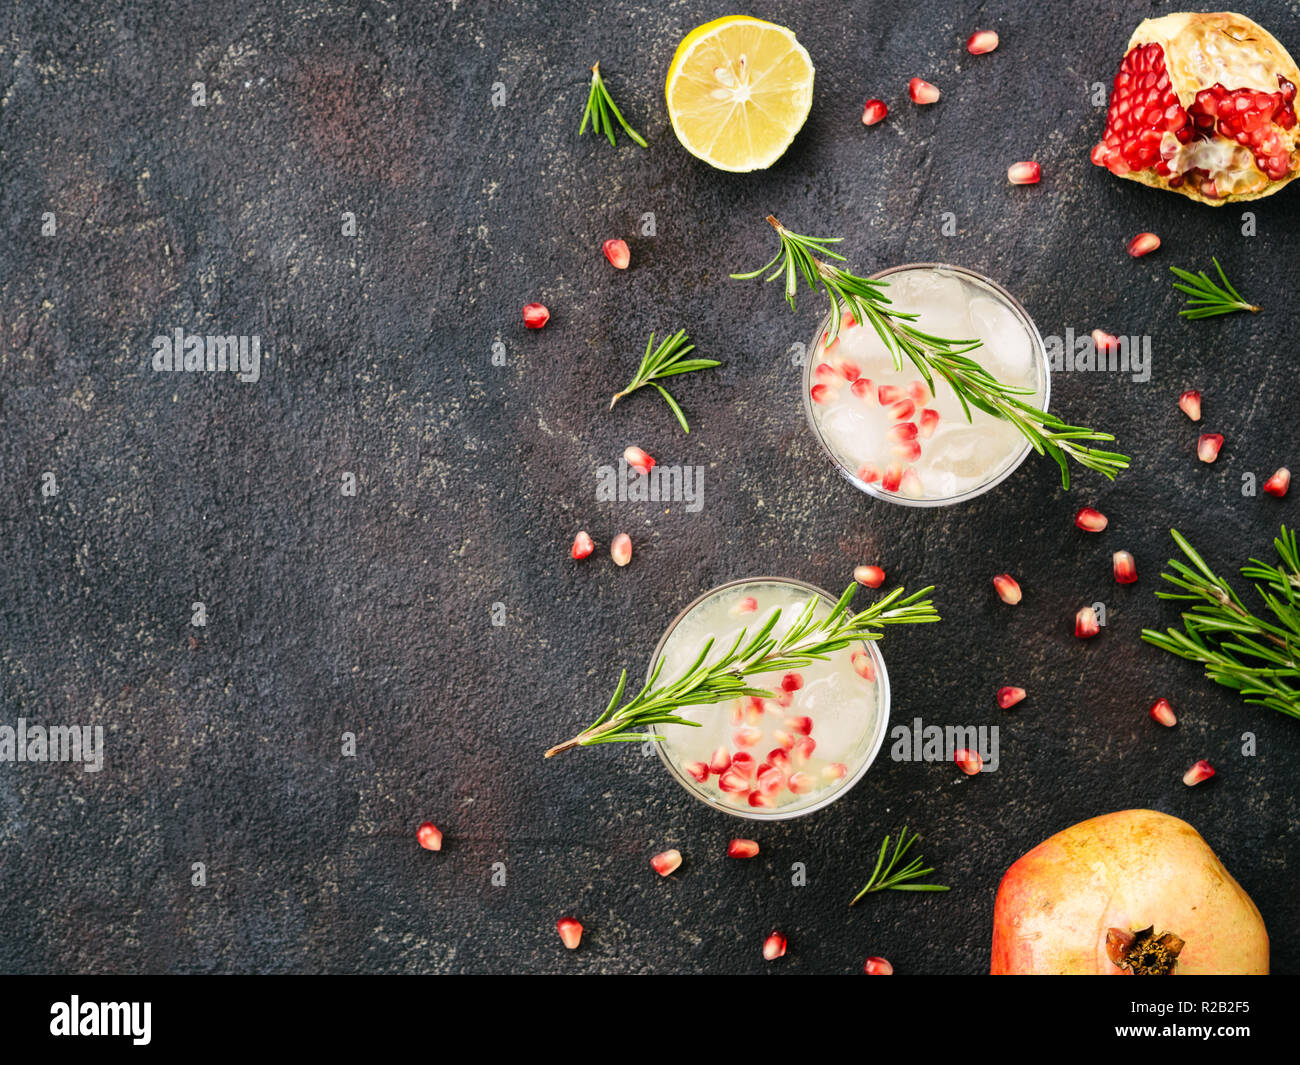 Autumn and winter cocktails idea - white sangria with rosemary, pomegrante and lemon juice and ingredients on black cement background. Copy space. Top view or flat-lay. - Stock Image